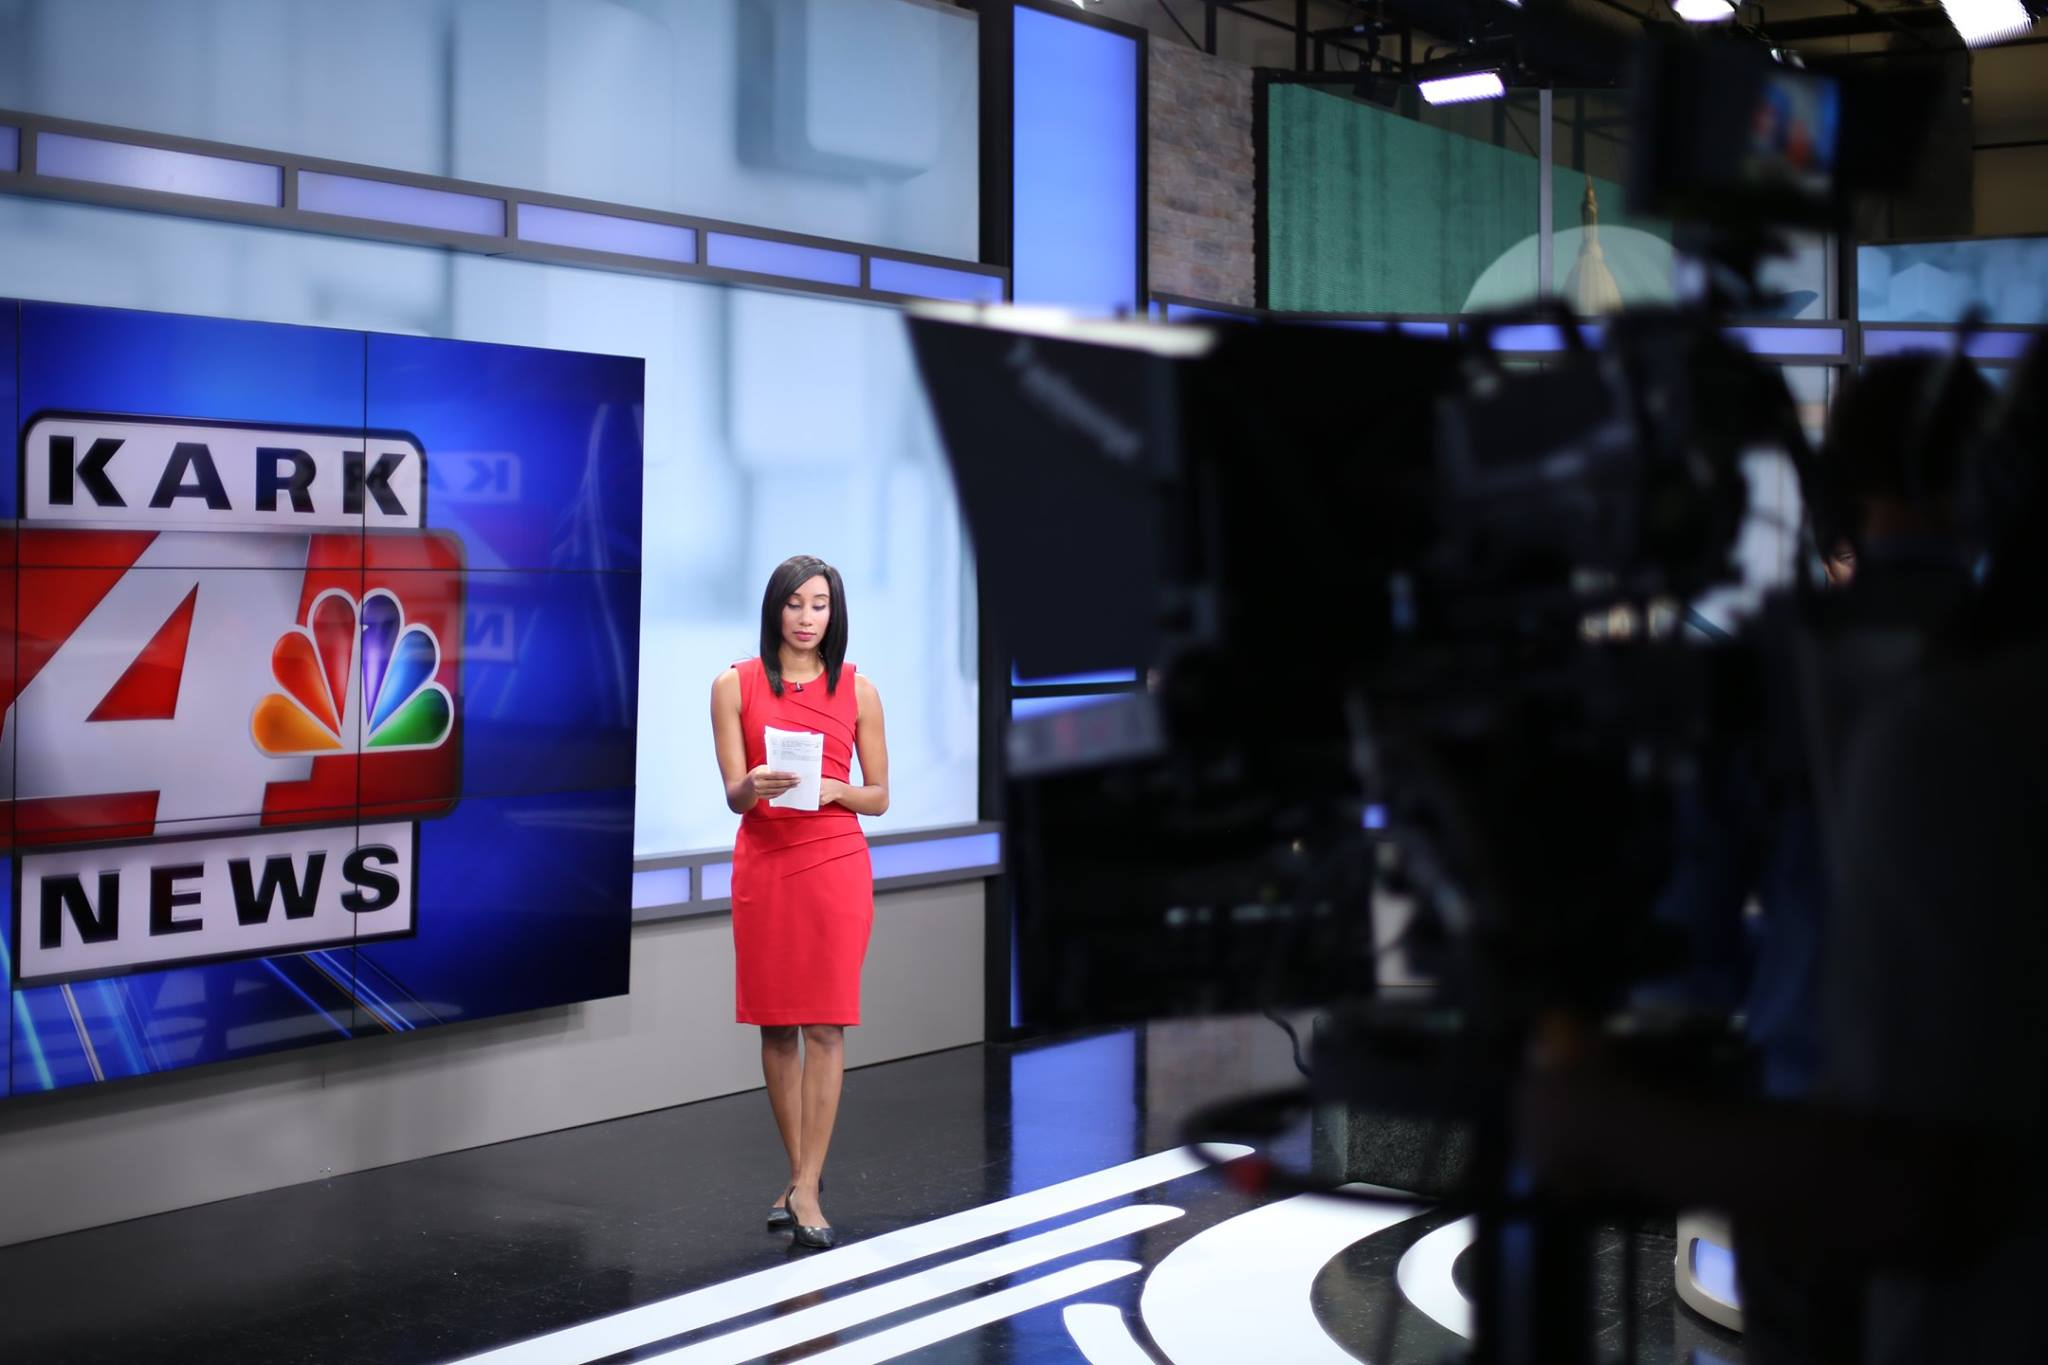 ncs_kark-4-news-tv-studio-arkansas_0007